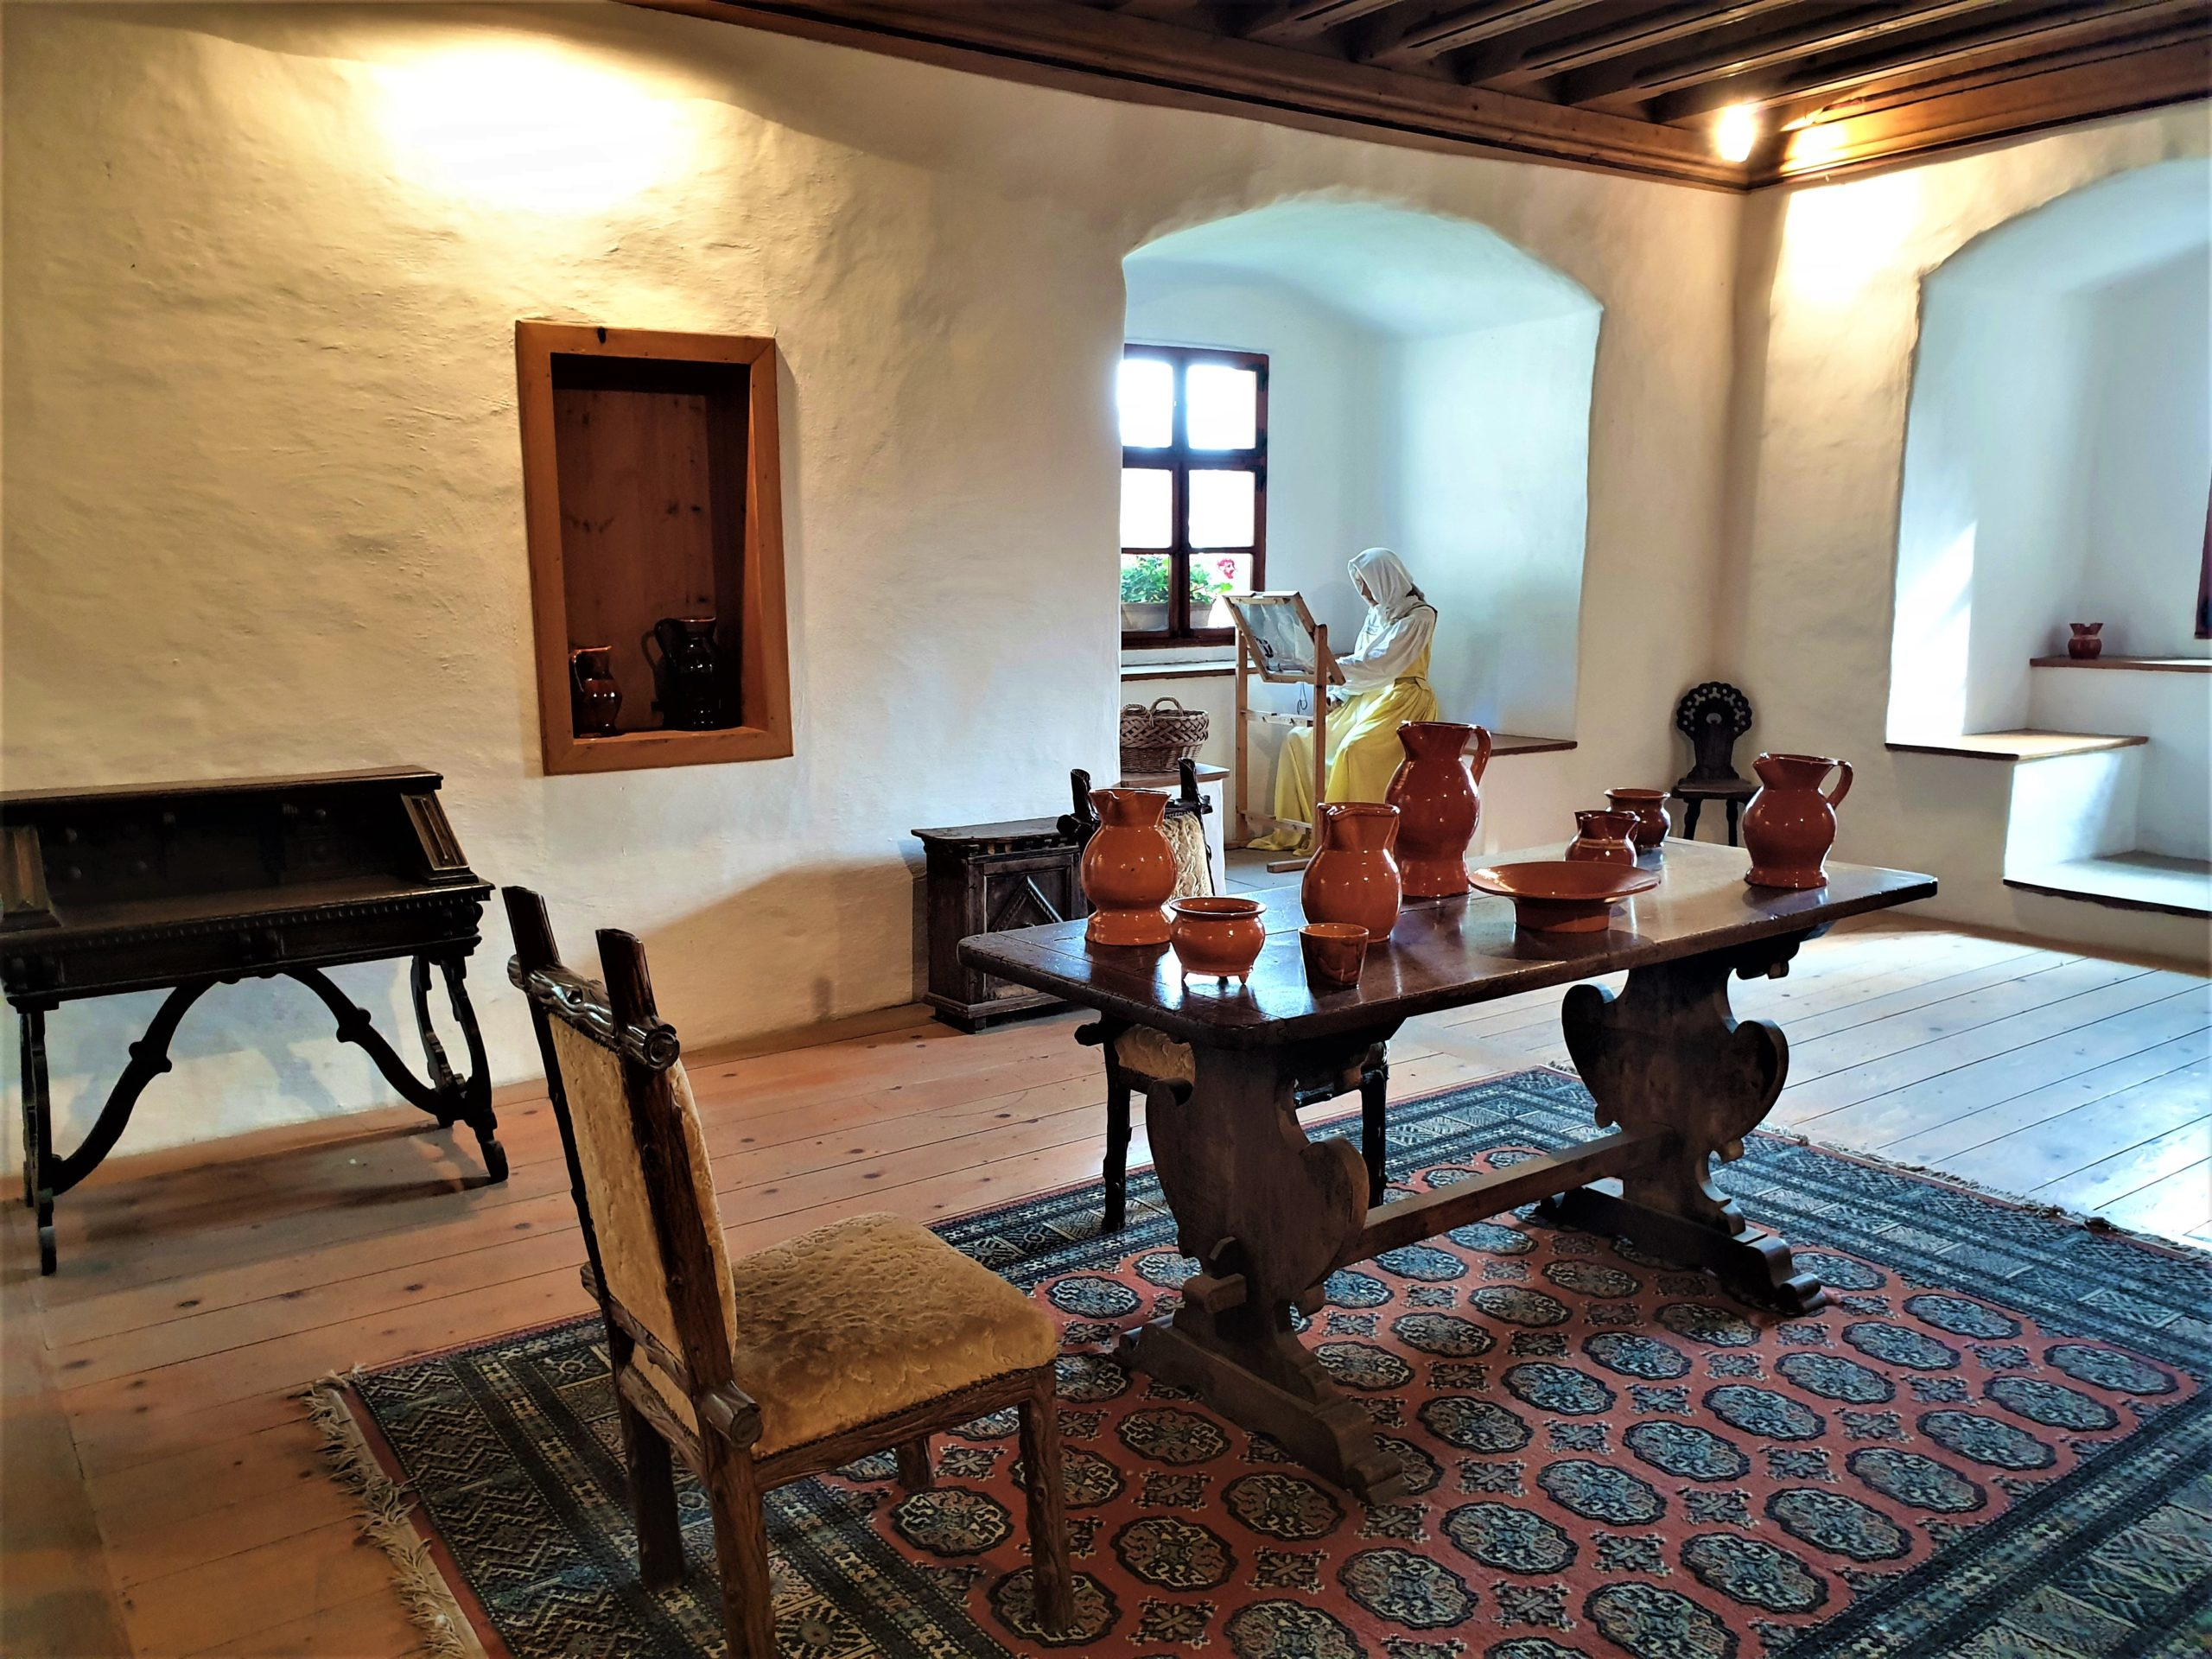 Furnished Interior of the Predjama Castle